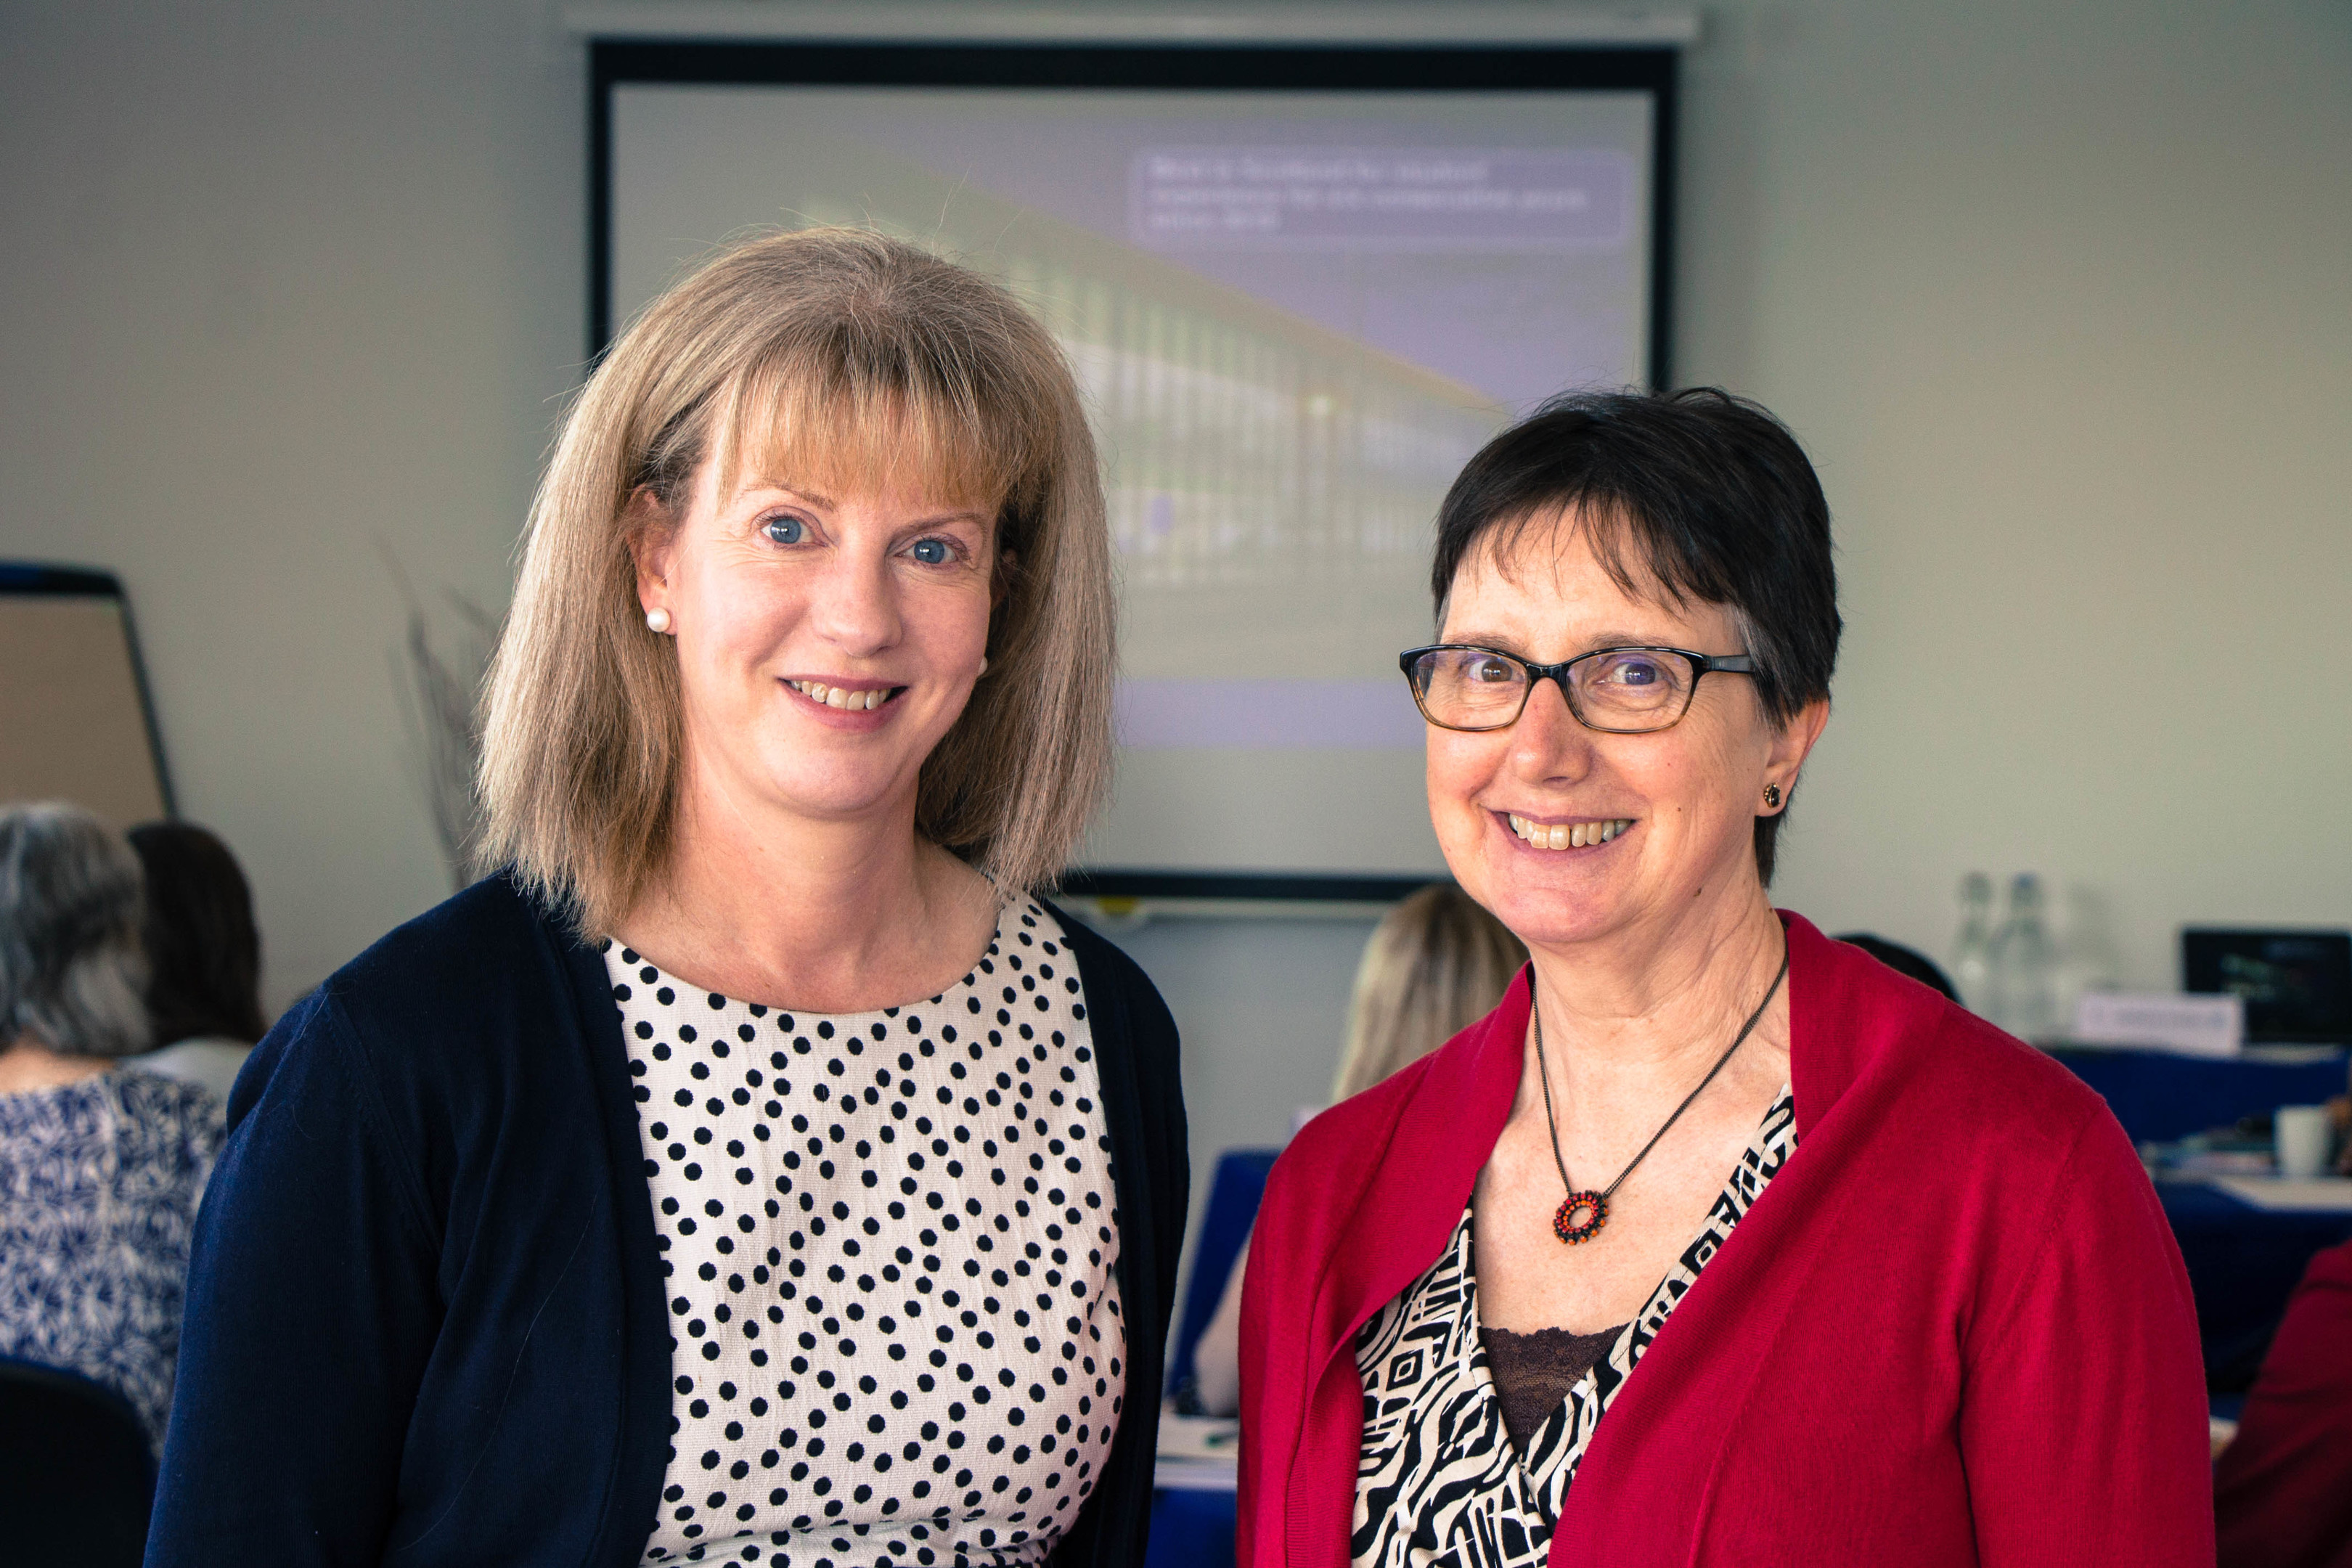 Health secretary Shona Robison and Professor Mary Renfrew.